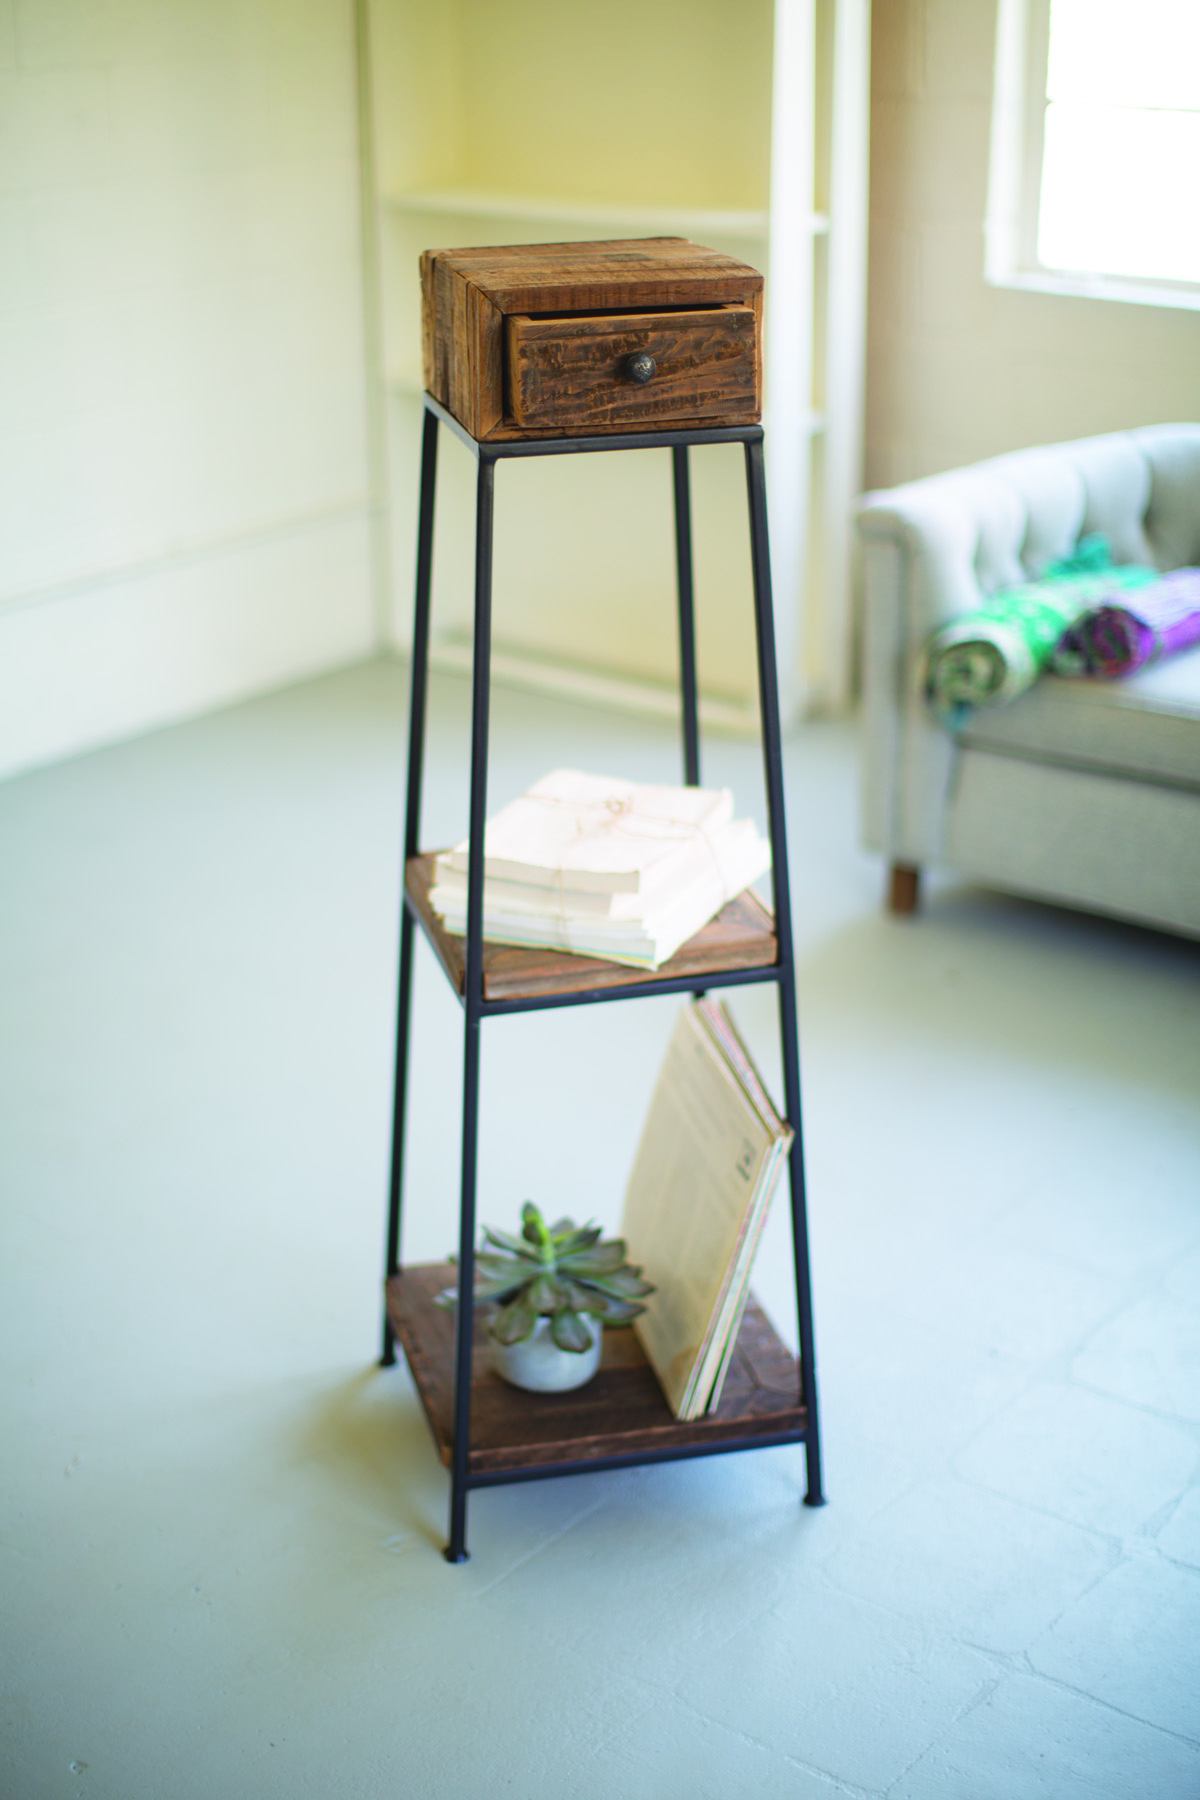 Three Tiered Iron Tower With Recycled Wood Shelves & Drawer